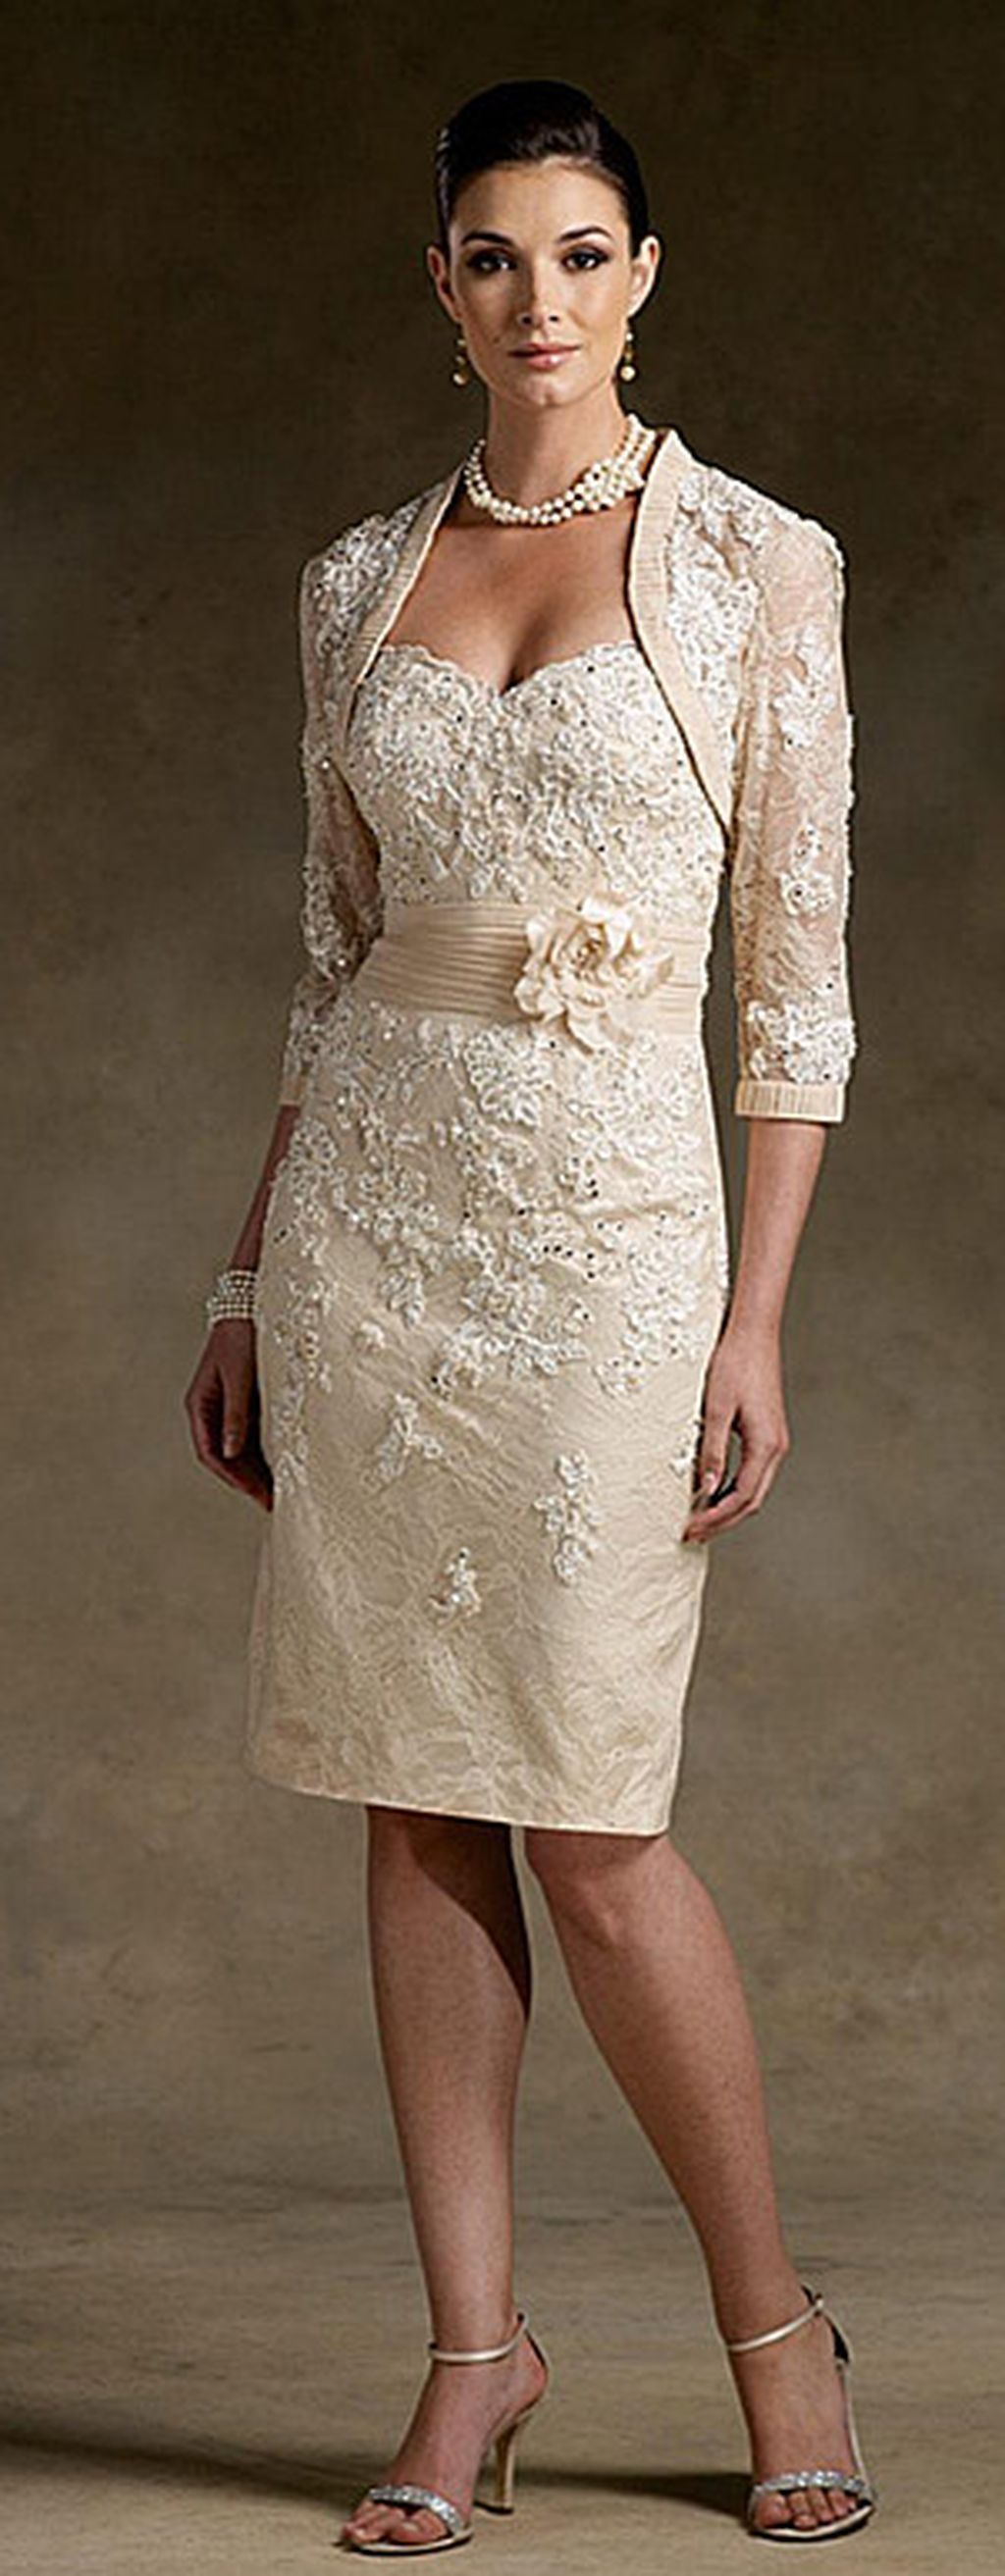 83 simple but romantic non traditional wedding dress ideas